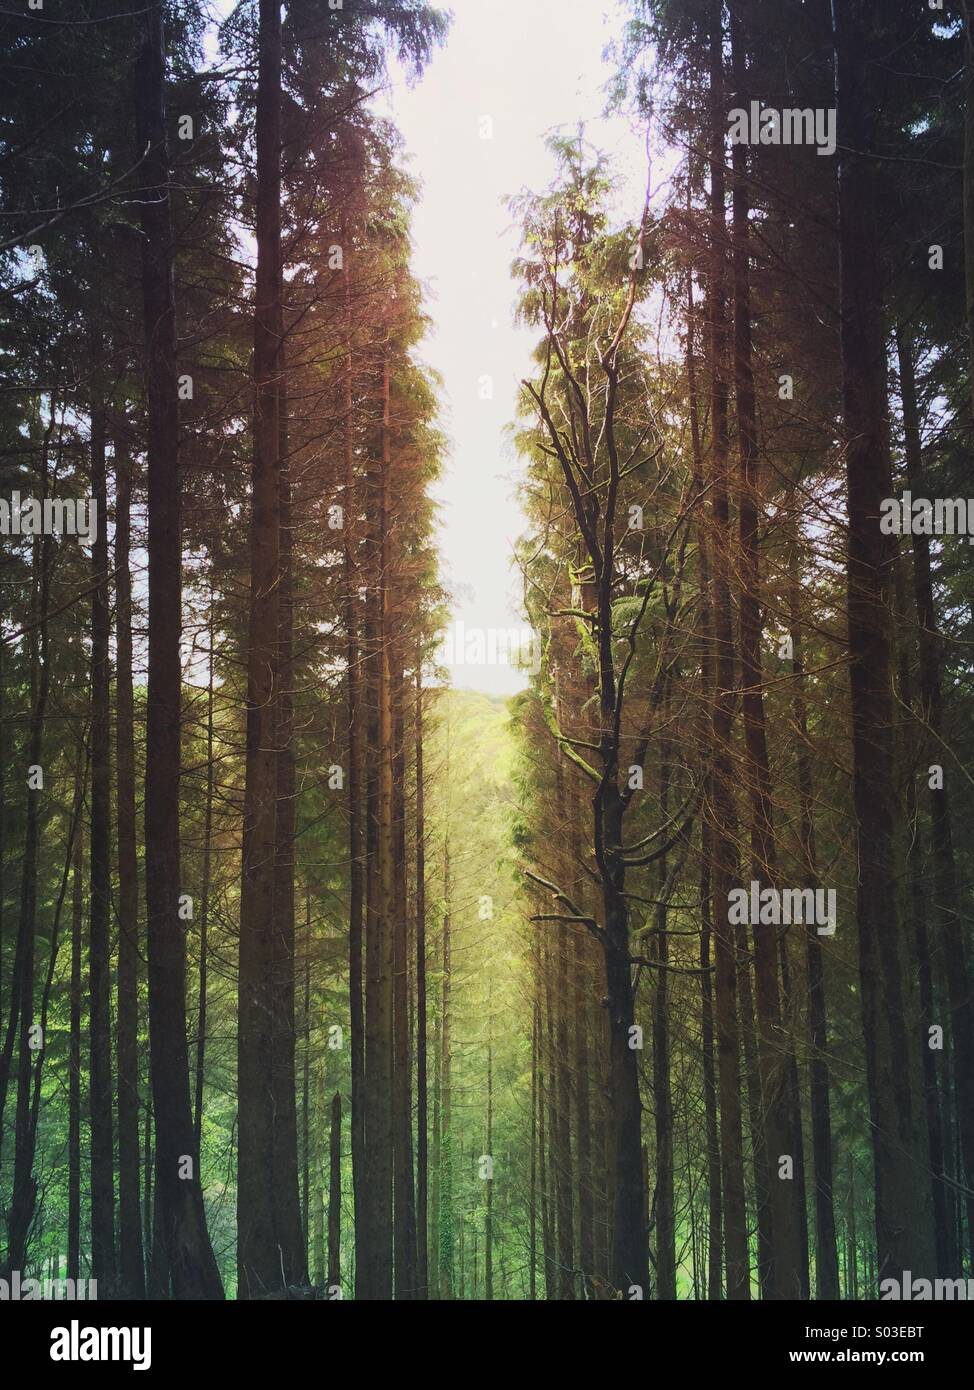 Space and sunlight through a break in the forest. - Stock Image